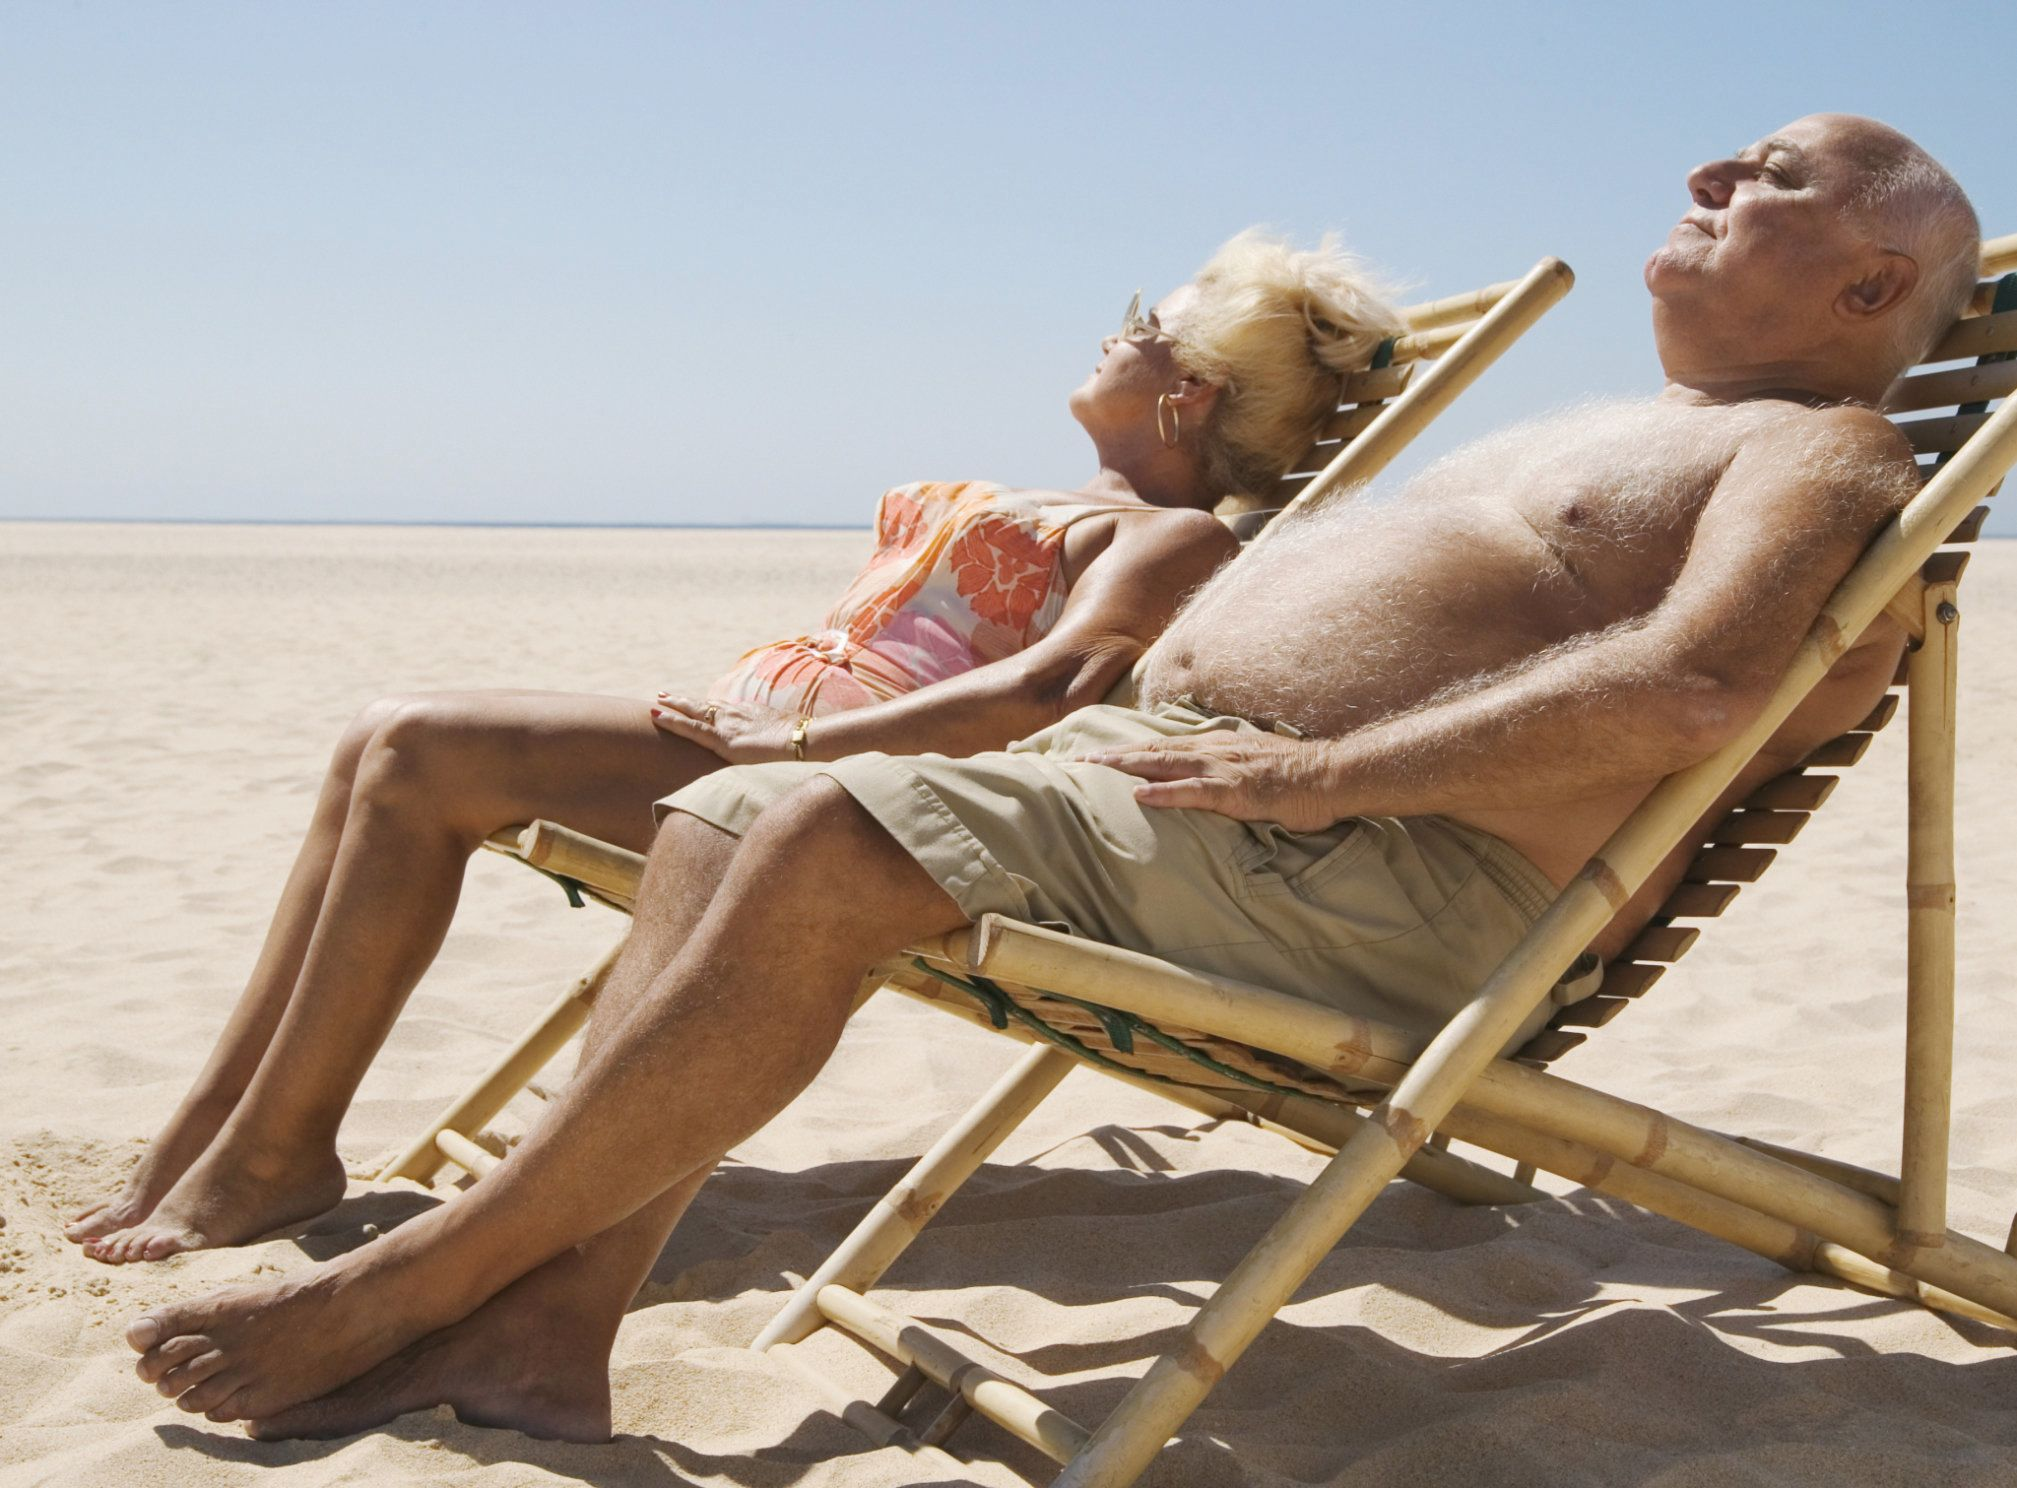 Skin Cancer Cases Soaring Among 'Sun, Sea and Sangria' Generation Of Over 55s, Charity